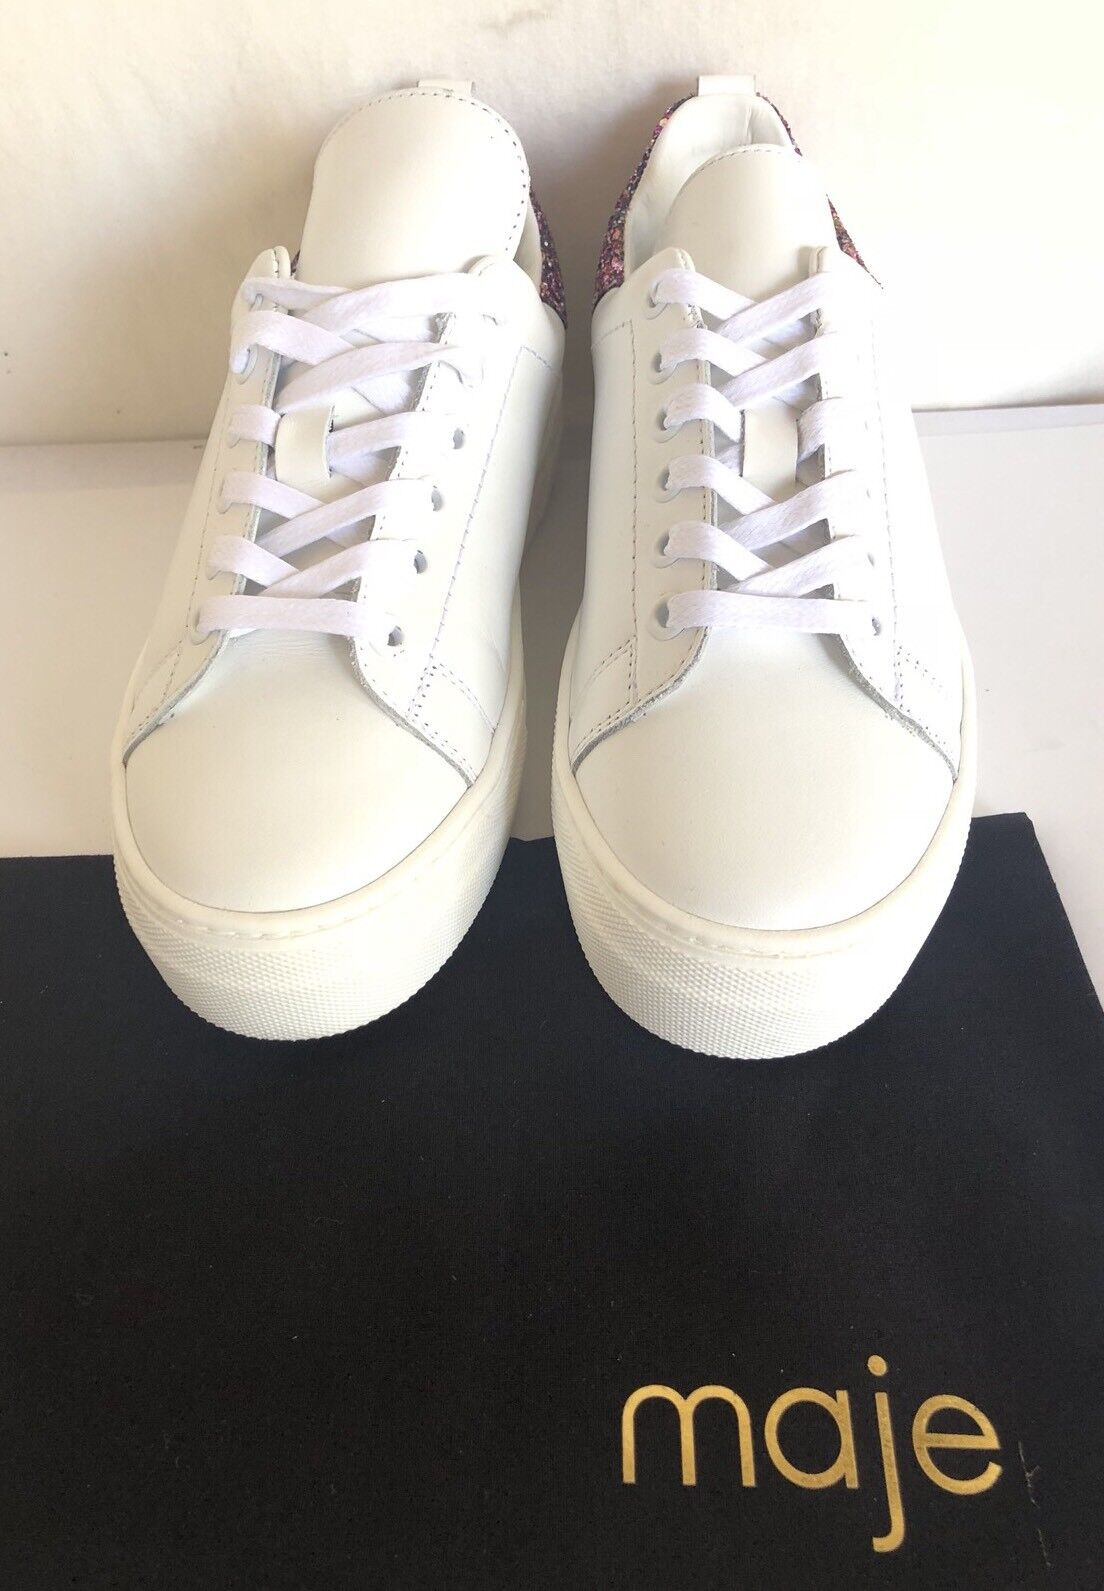 Maje NEW  280 bianca Leather Leather Leather Glitter Trainers  sz 37- 6.5 US platform 480579